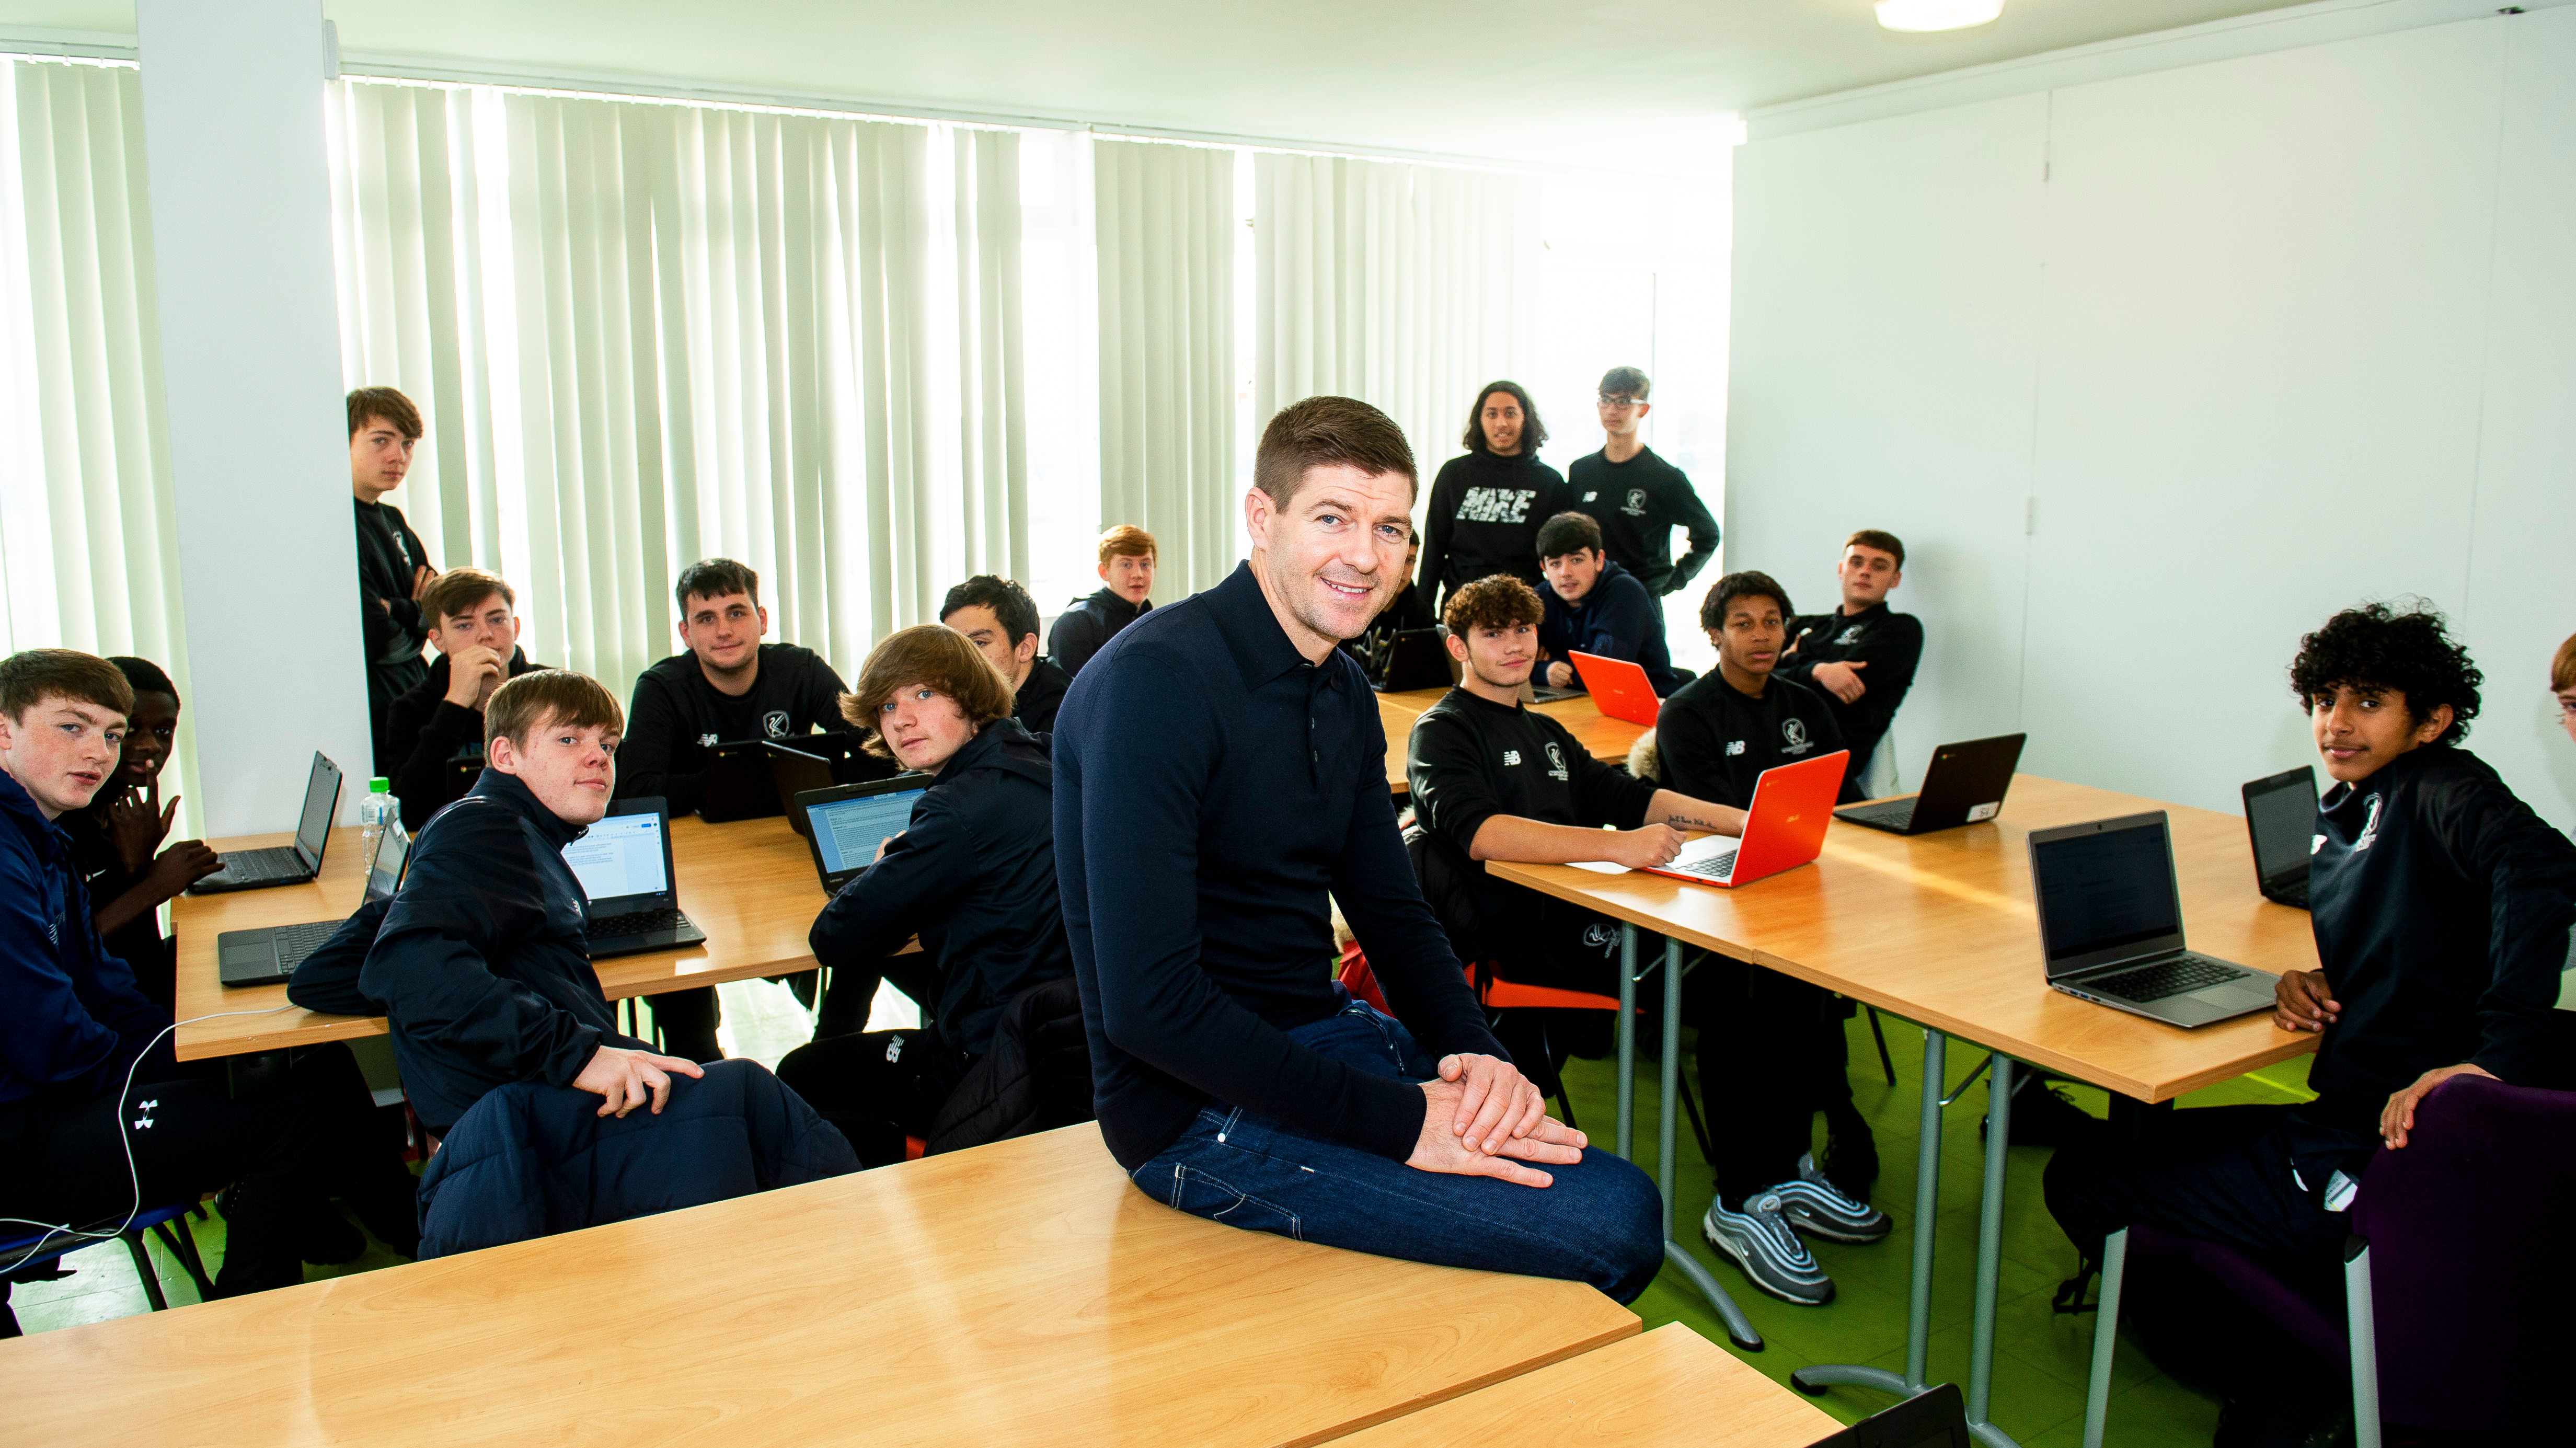 Steven Gerrard at Liverpool Football College with students